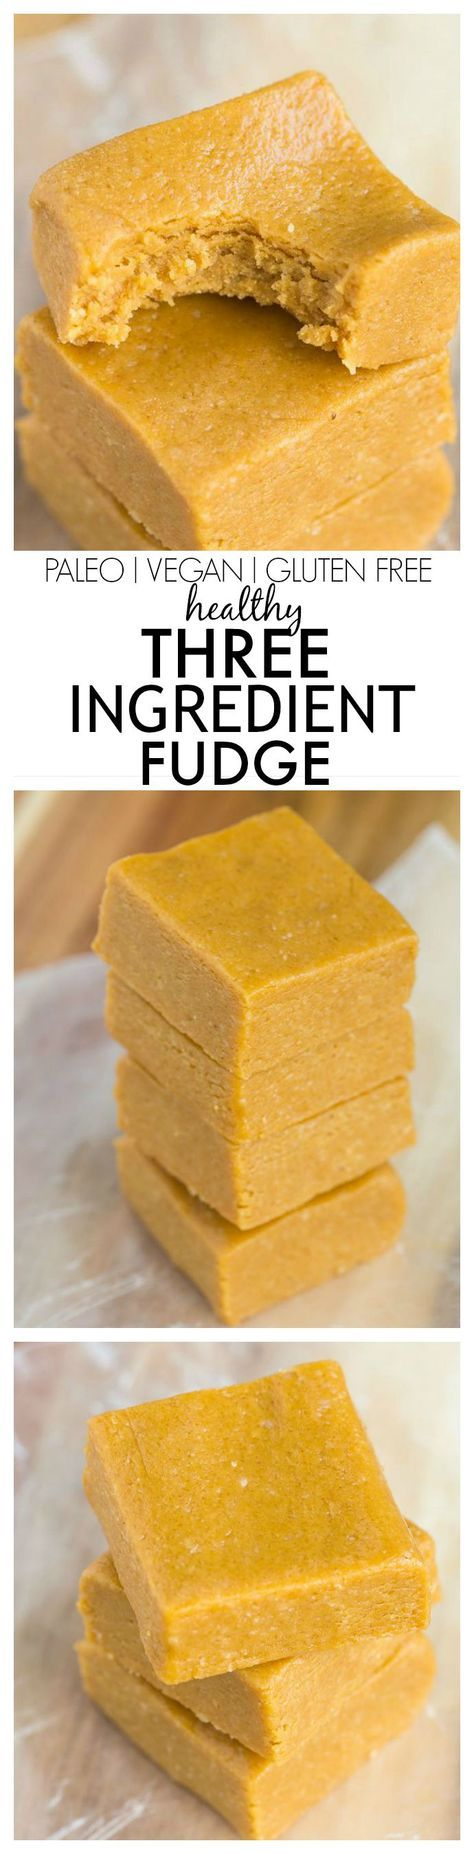 Three Ingredient No Bake Fudge recipe which melts in your mouth and takes 5 minutes! A quick and easy snack or dessert recipe which is Paleo, vegan and gluten free too! - thebigmansworld.com